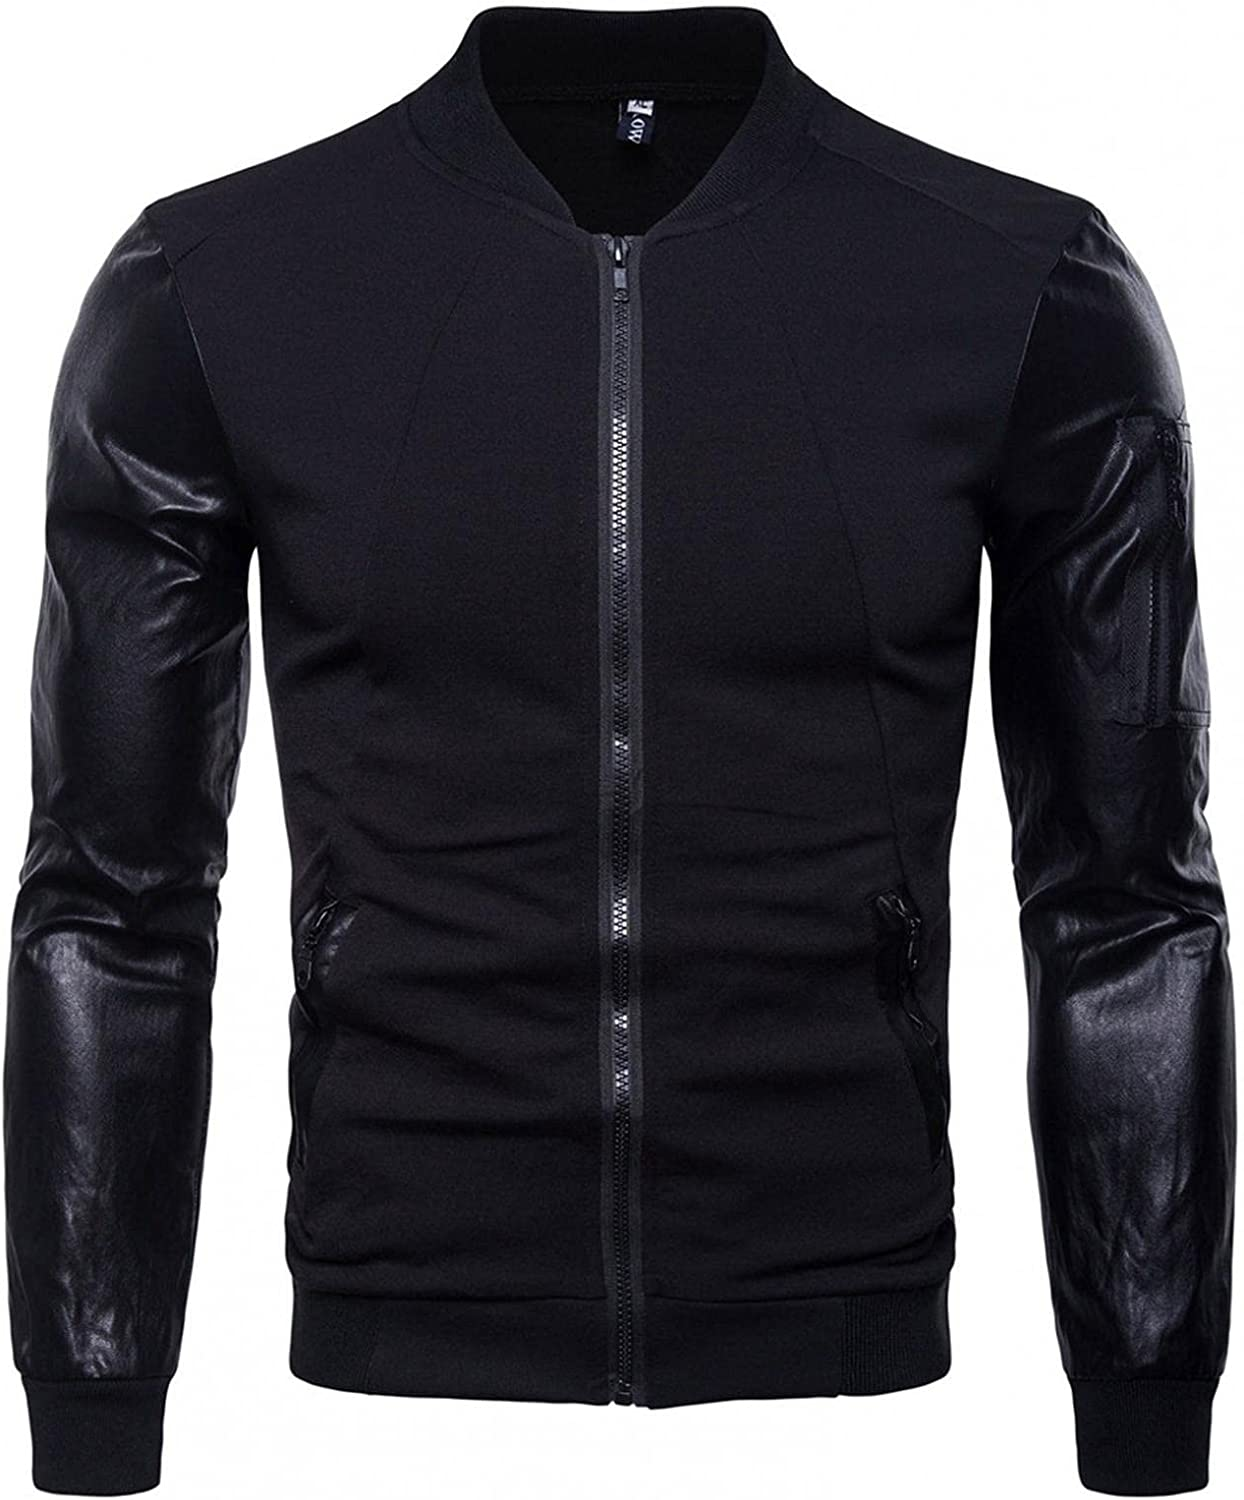 JSPOYOU Men's Stand Collar Jackets PU Leather Sleeves Softshell Splicing Zipper Motorcycle Coat Lightweight Slim Jacket